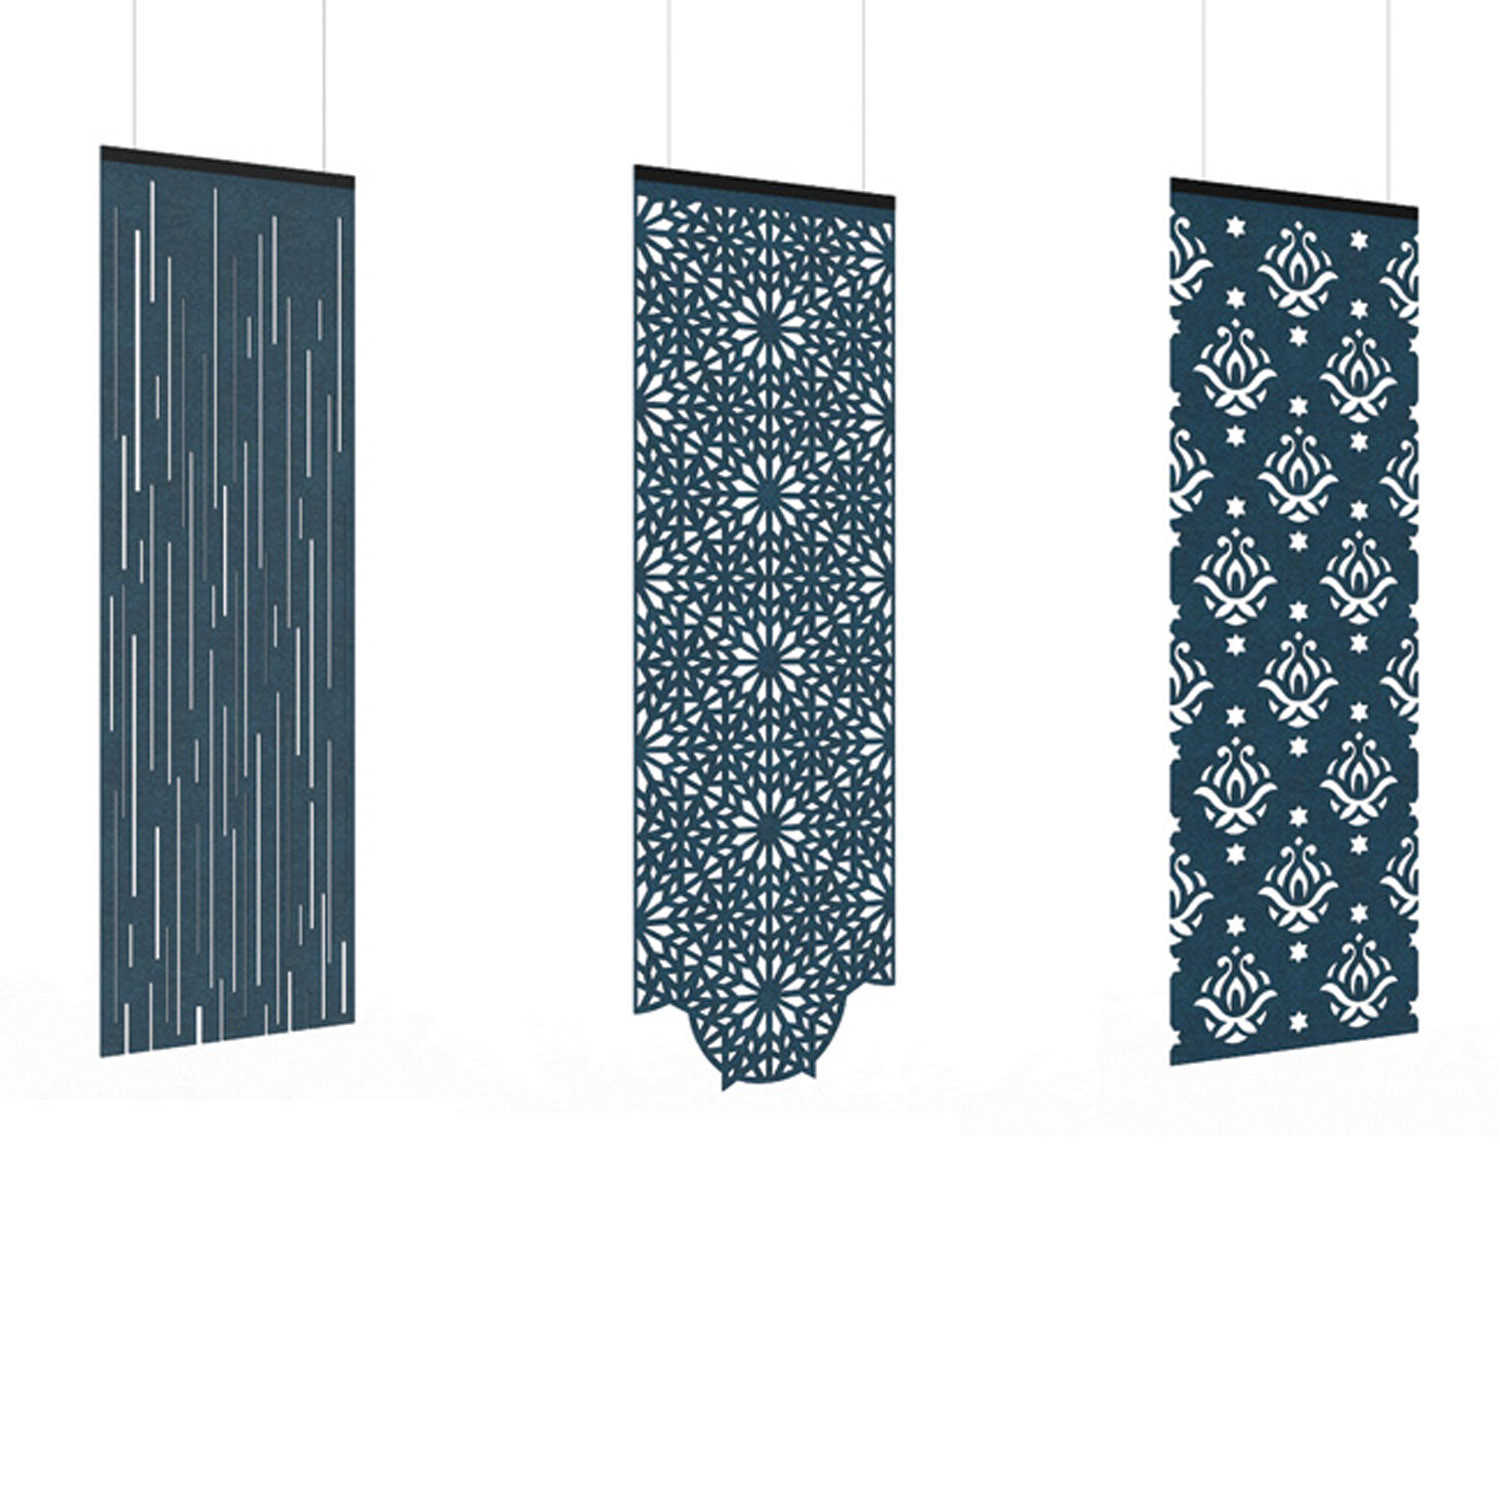 BuzziFalls Room Dividers by BuzziSpace